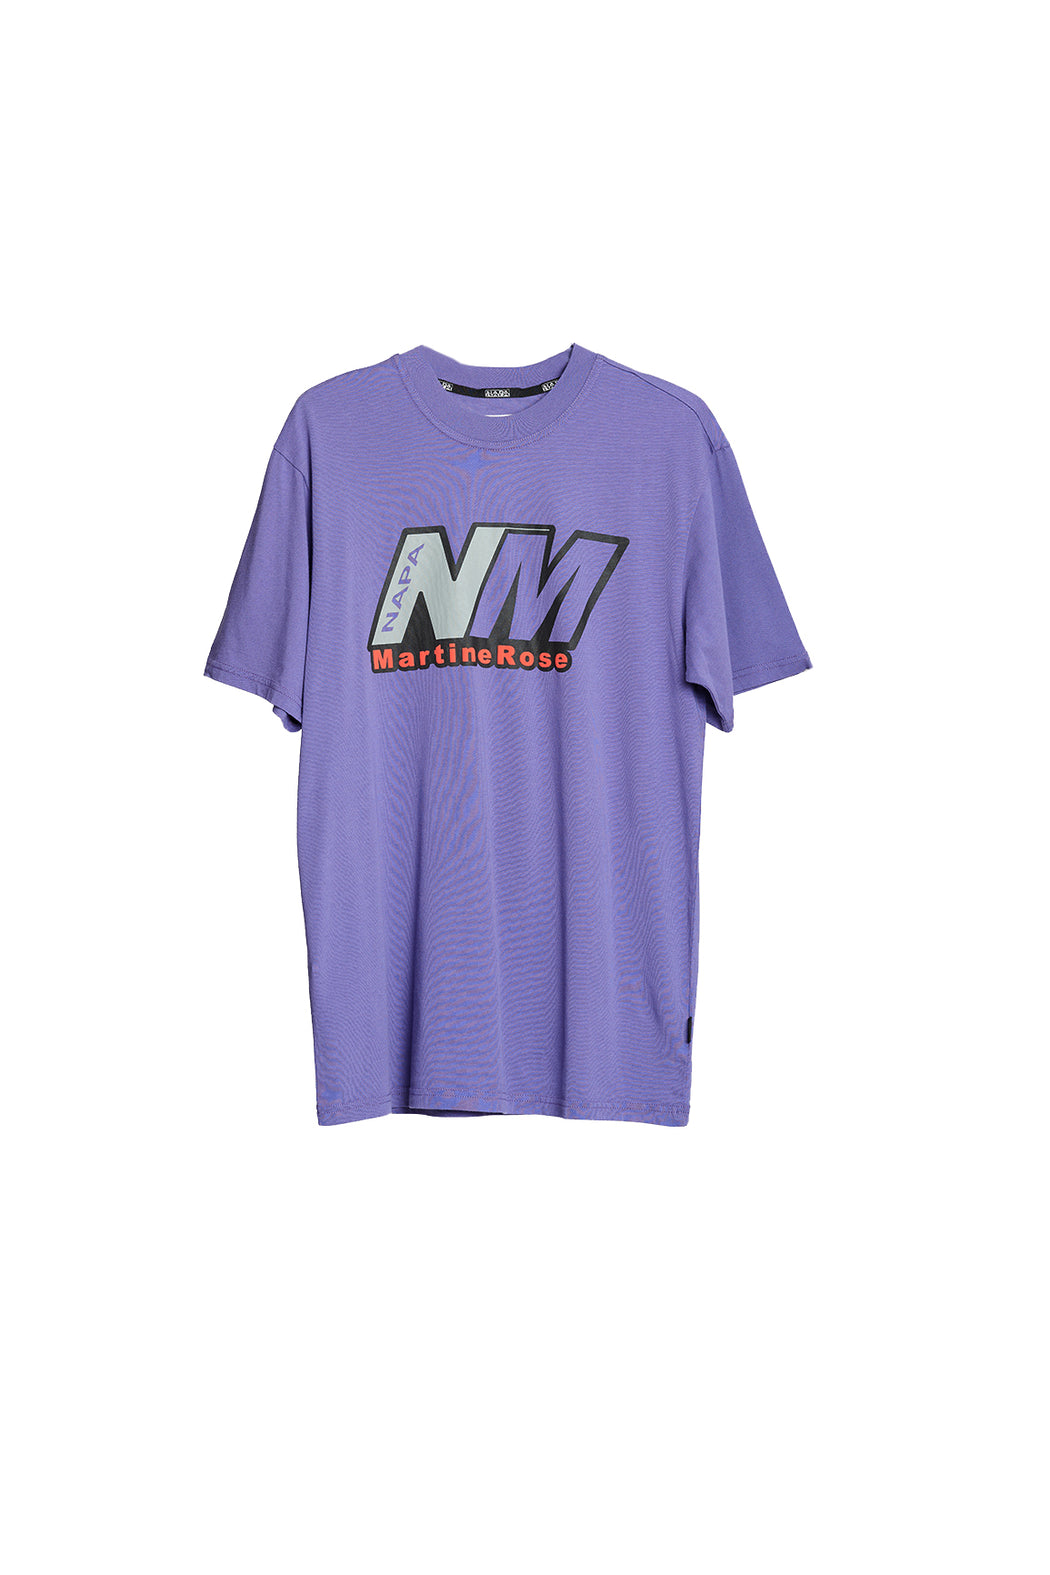 S-CENIS S/S Tee - Purple